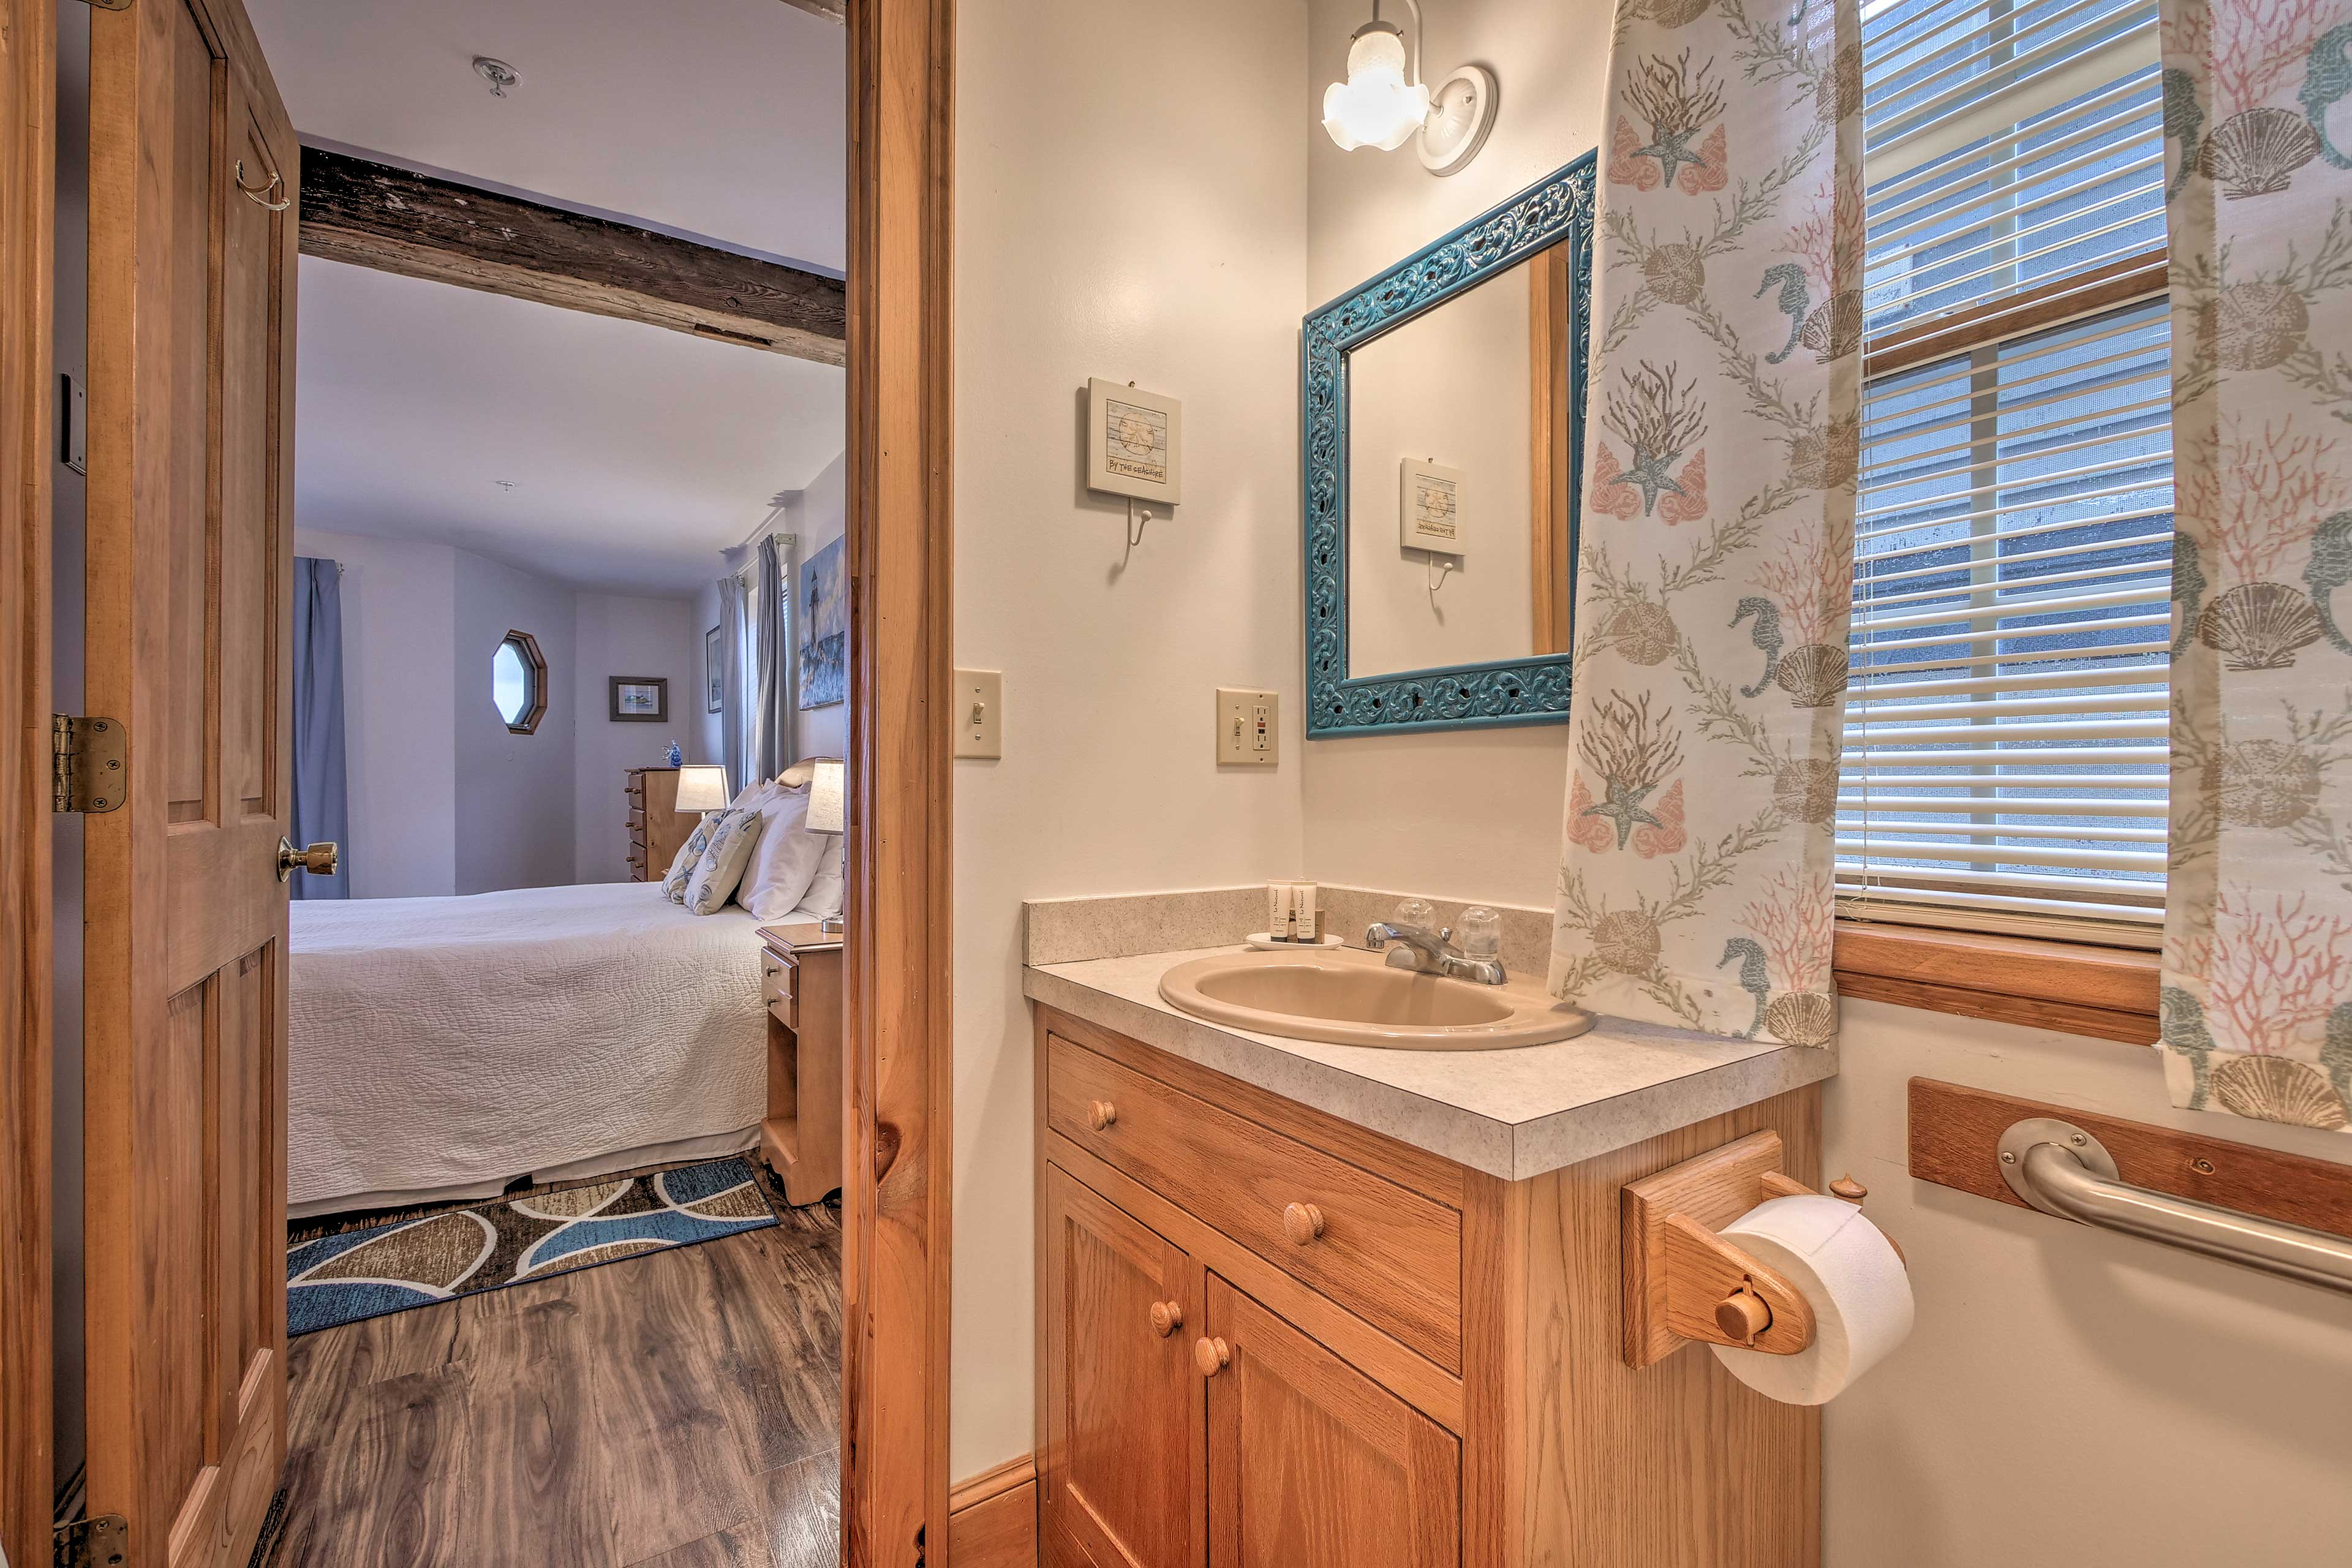 The bathroom is located just past the queen bed.